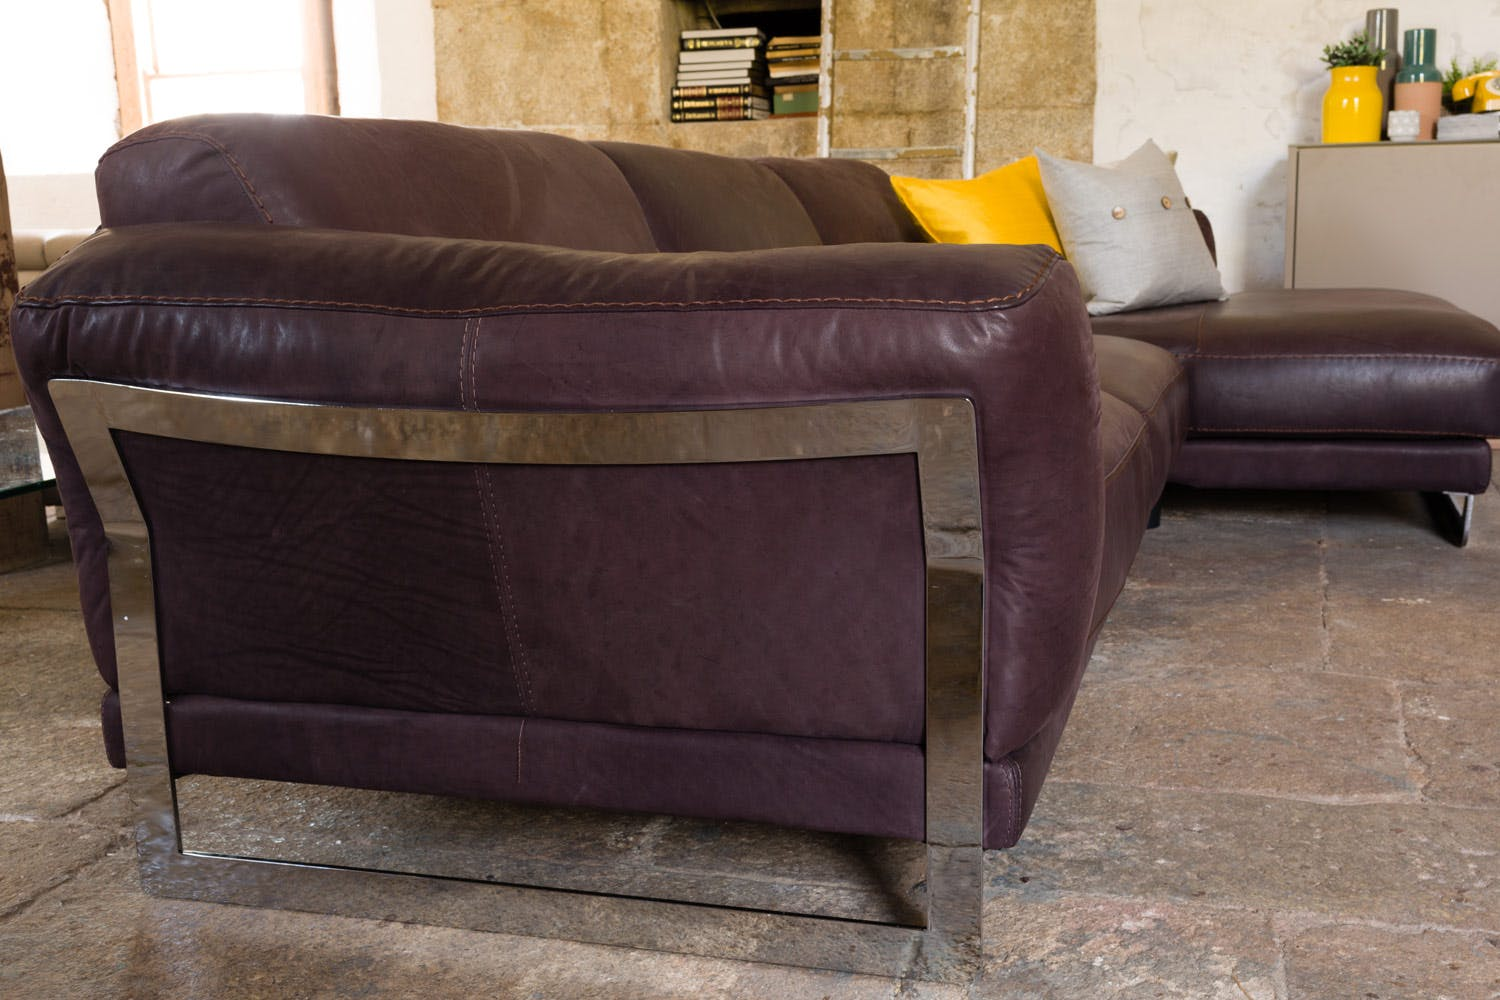 2 seater sofa with chaise thesofa for 2 seater chaise lounge